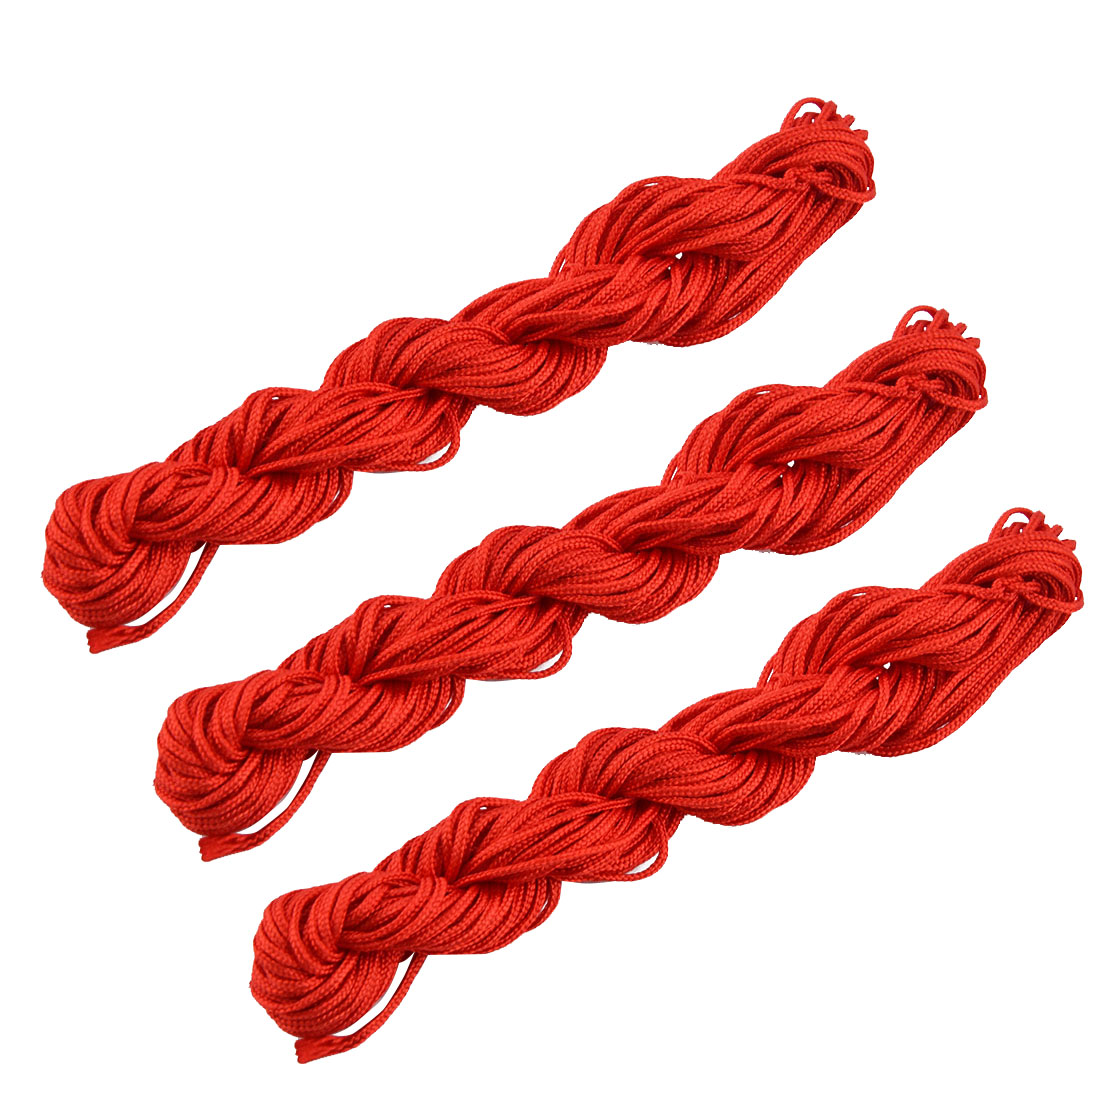 Household Polyester Chinese Knot Bracelet Beading Rattail Cord Red 16 Yards 3pcs